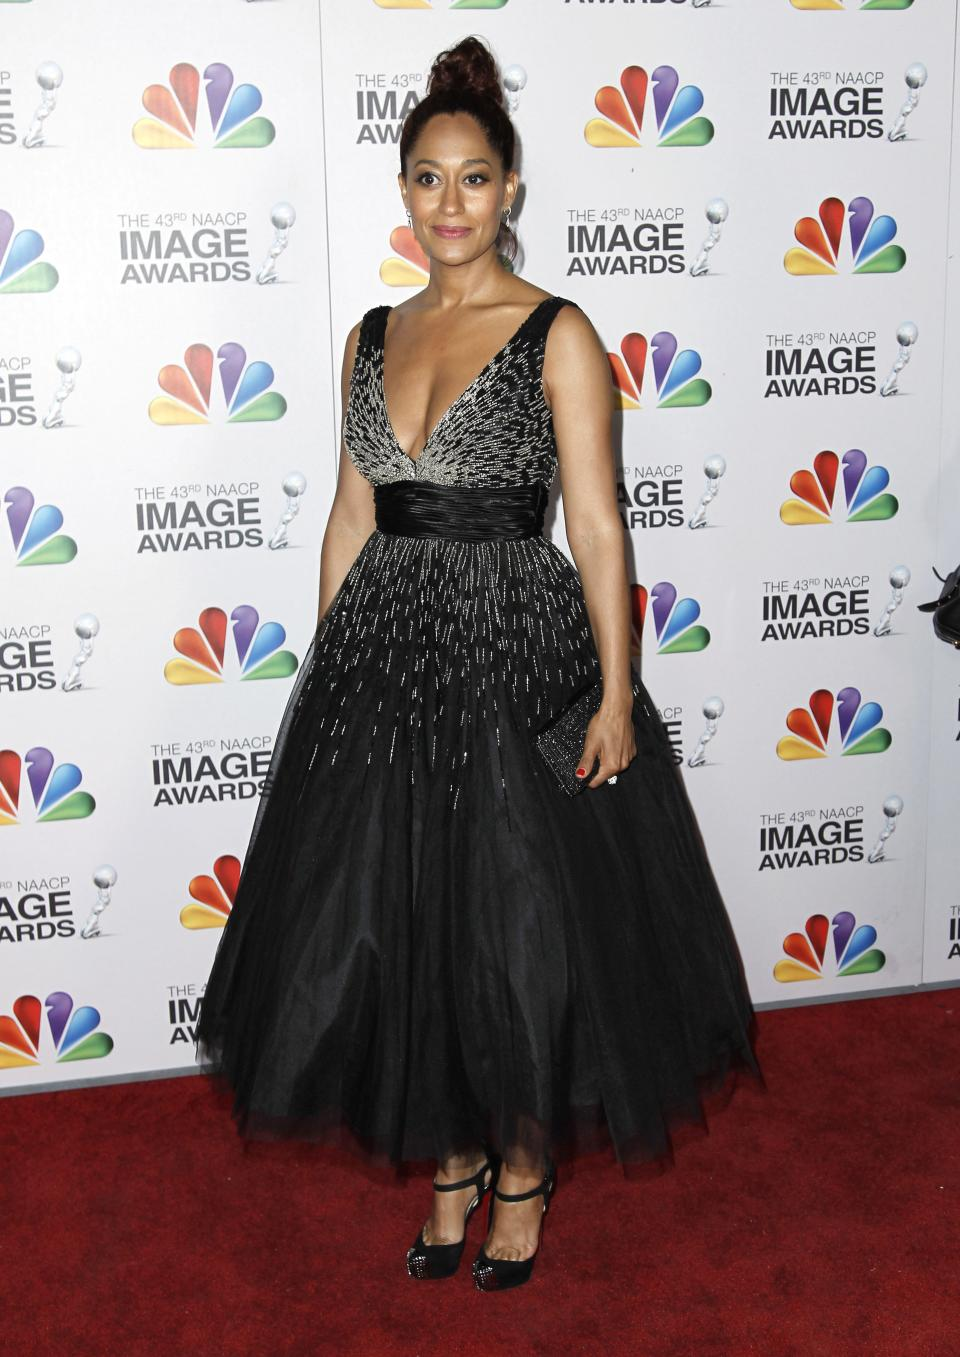 Tracee Ellis Ross arrives at the 43rd NAACP Image Awards on Friday, Feb. 17, 2012, in Los Angeles. (AP Photo/Matt Sayles)